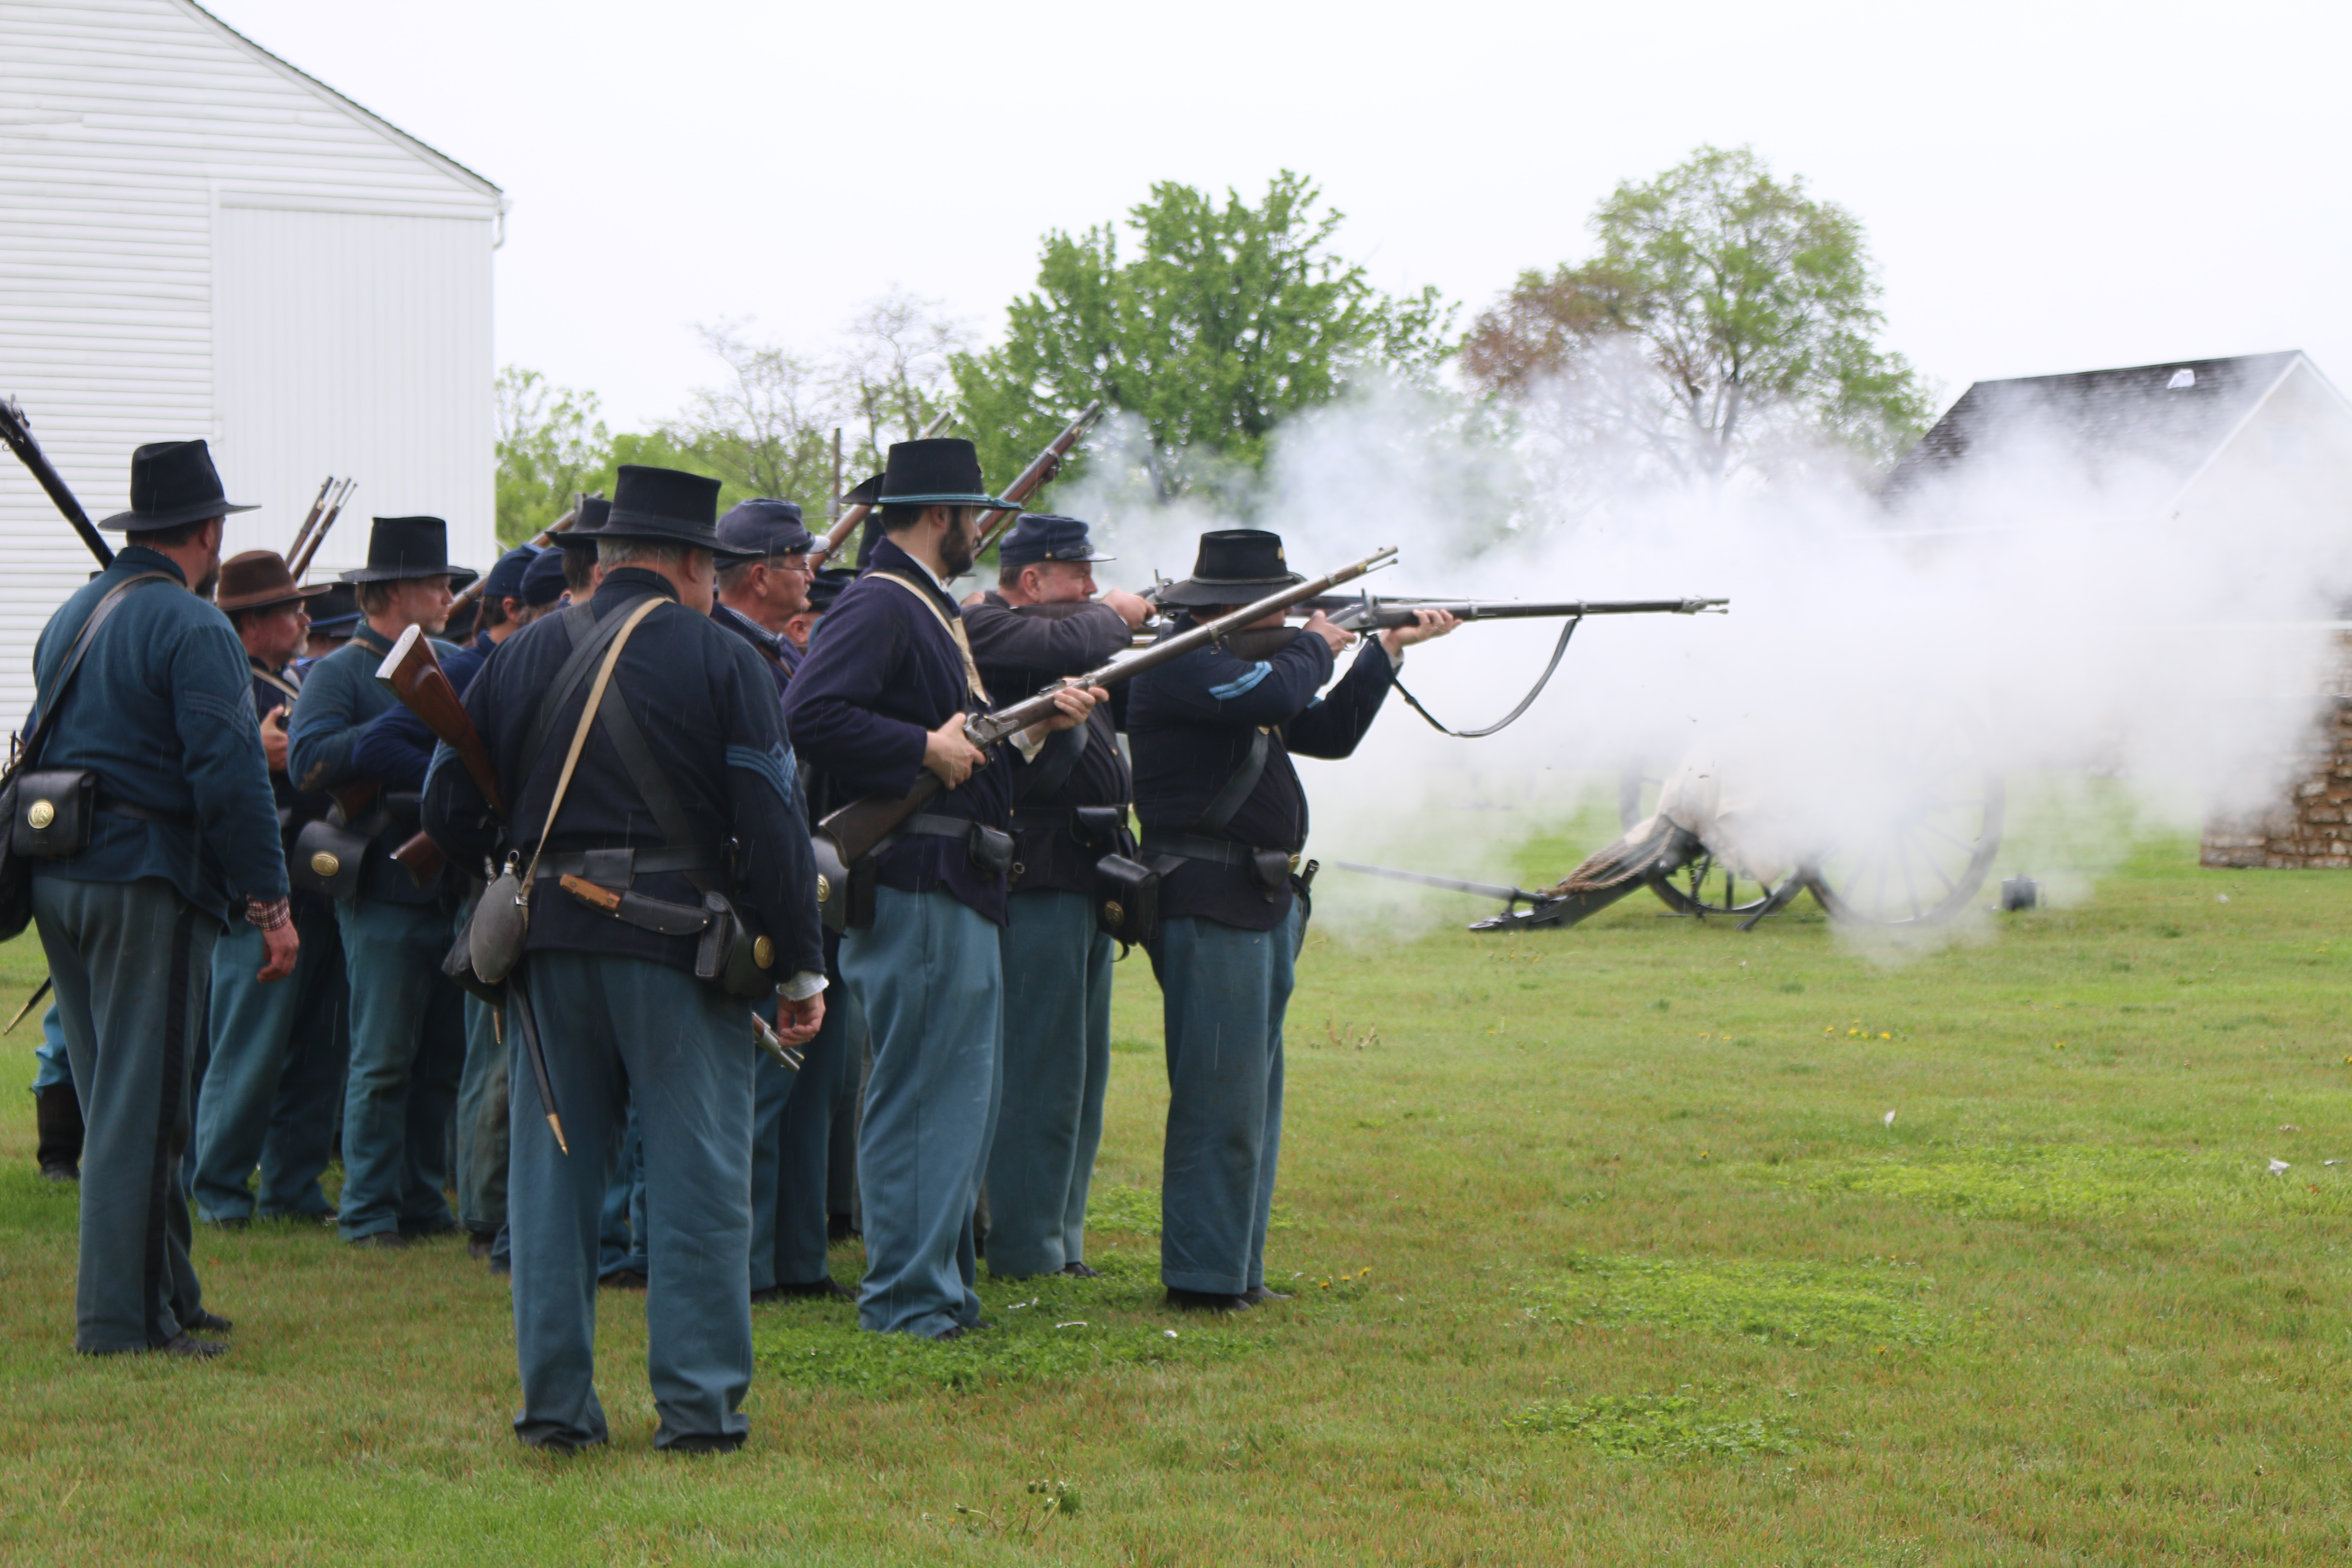 Soldiers firing Civil War Weapons